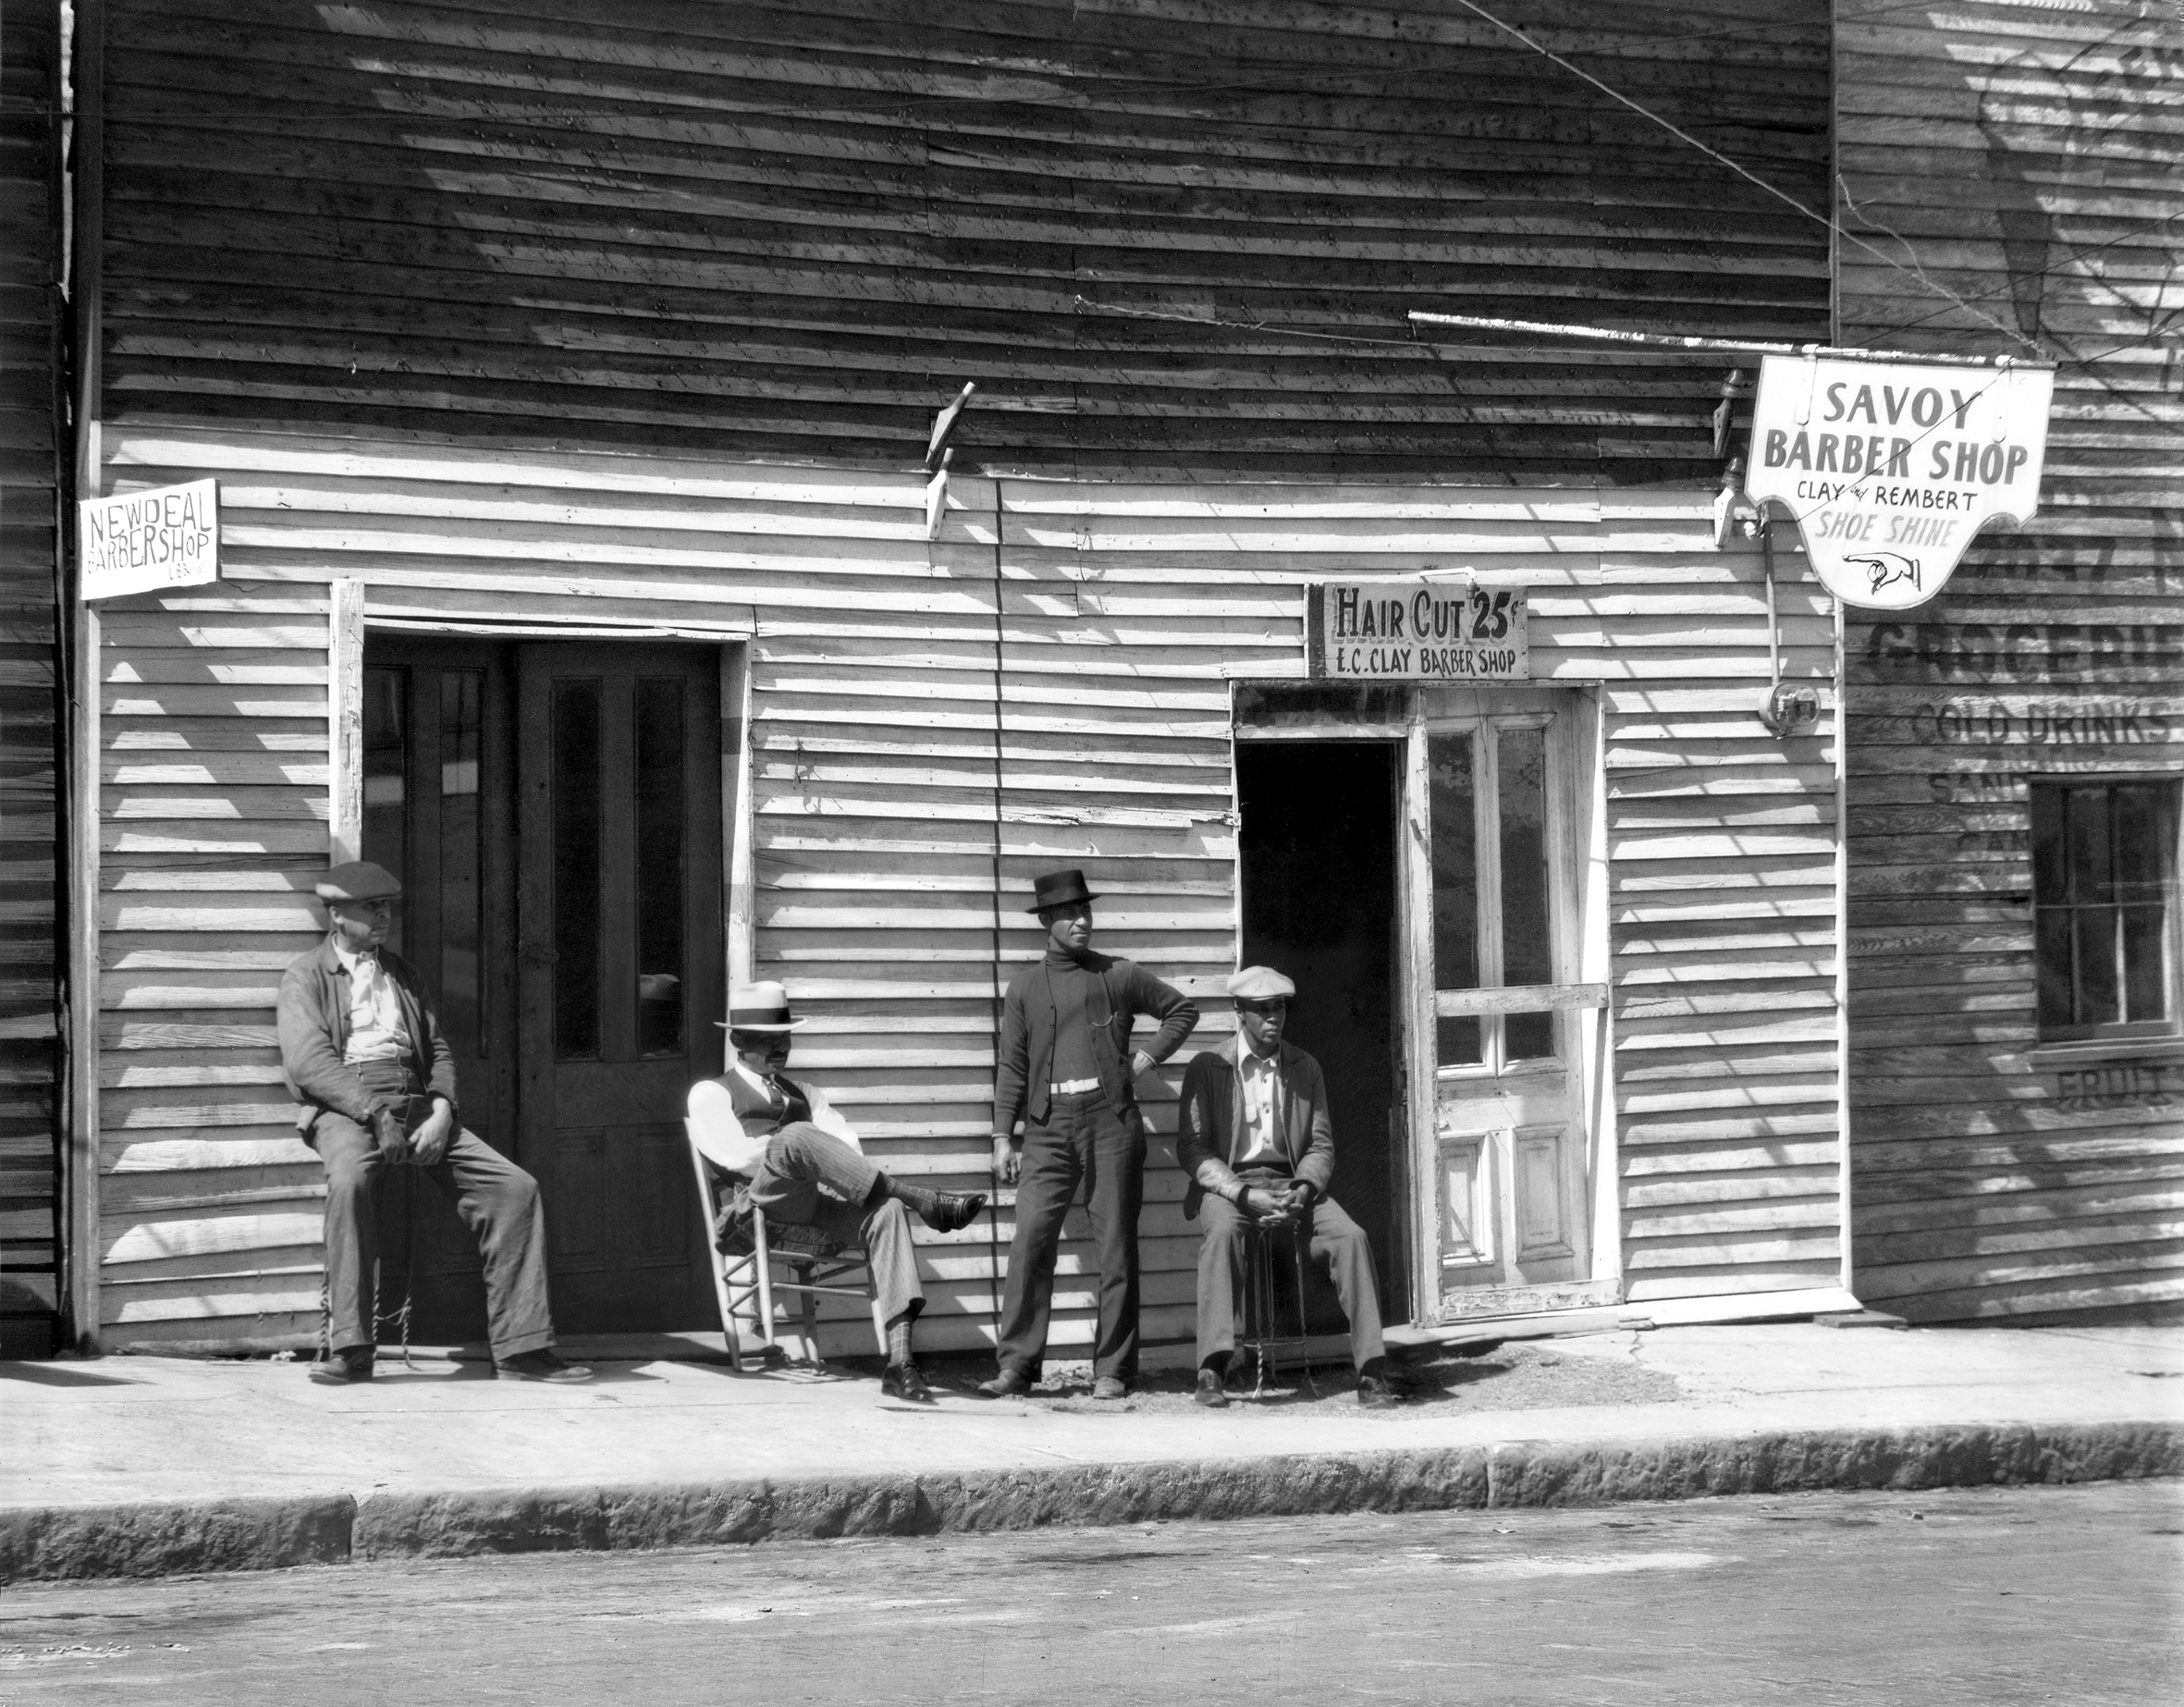 Walker Evans, Barber Shop, Southern Town, 1936,  © Walker Evans